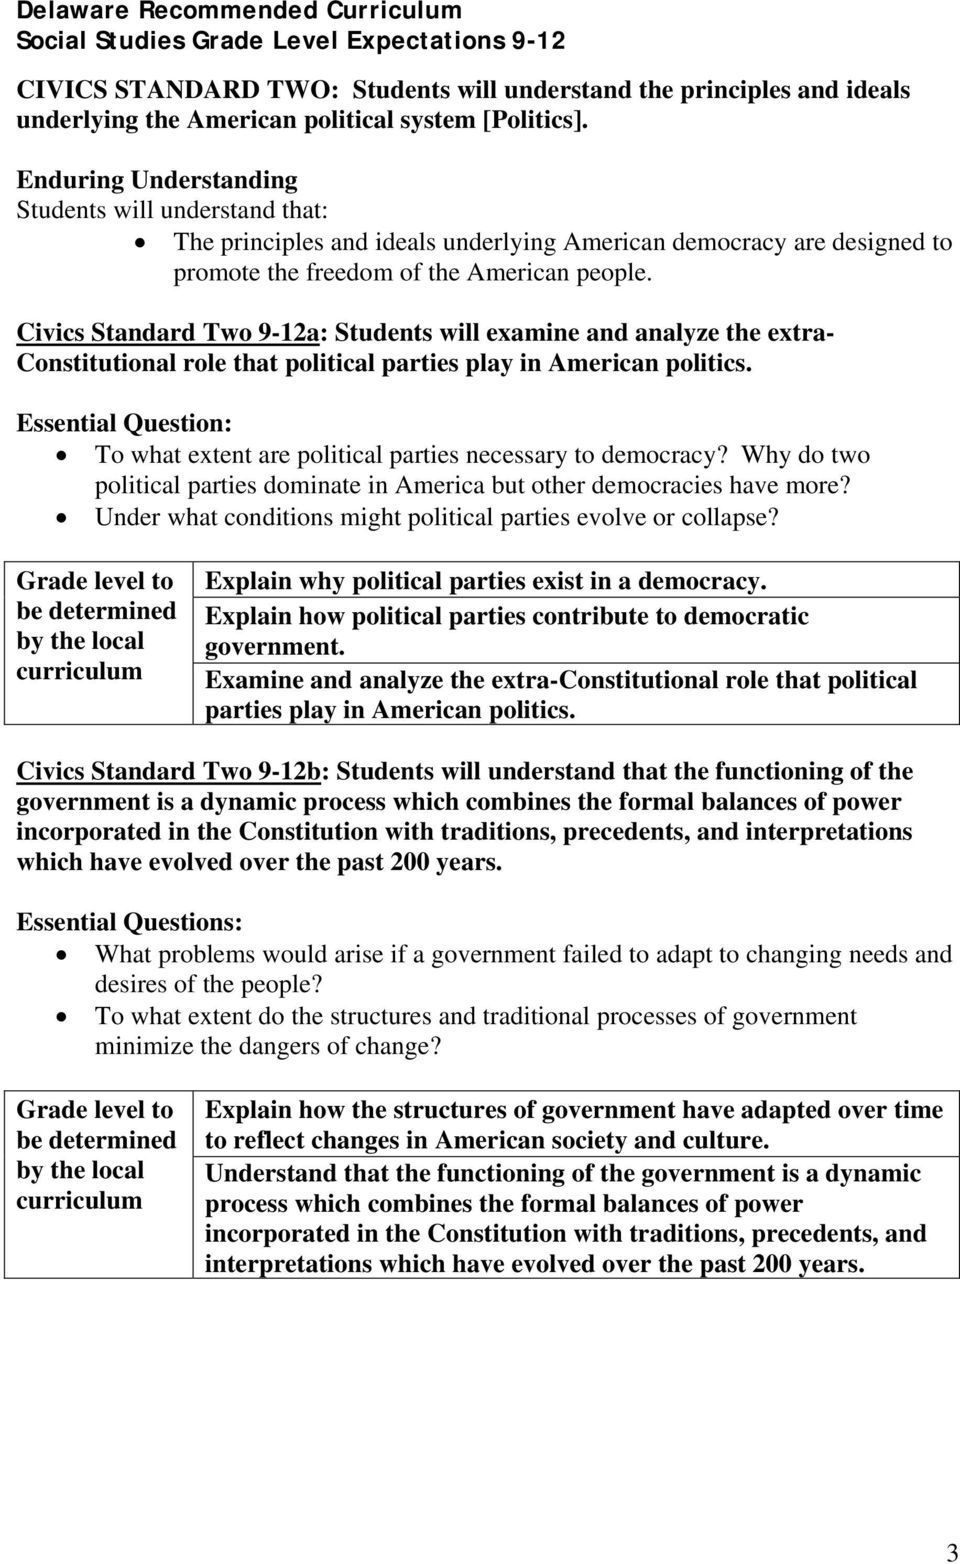 Civics Standard Two 9-12a: Students will examine and analyze the extra- Constitutional role that political parties play in American politics.